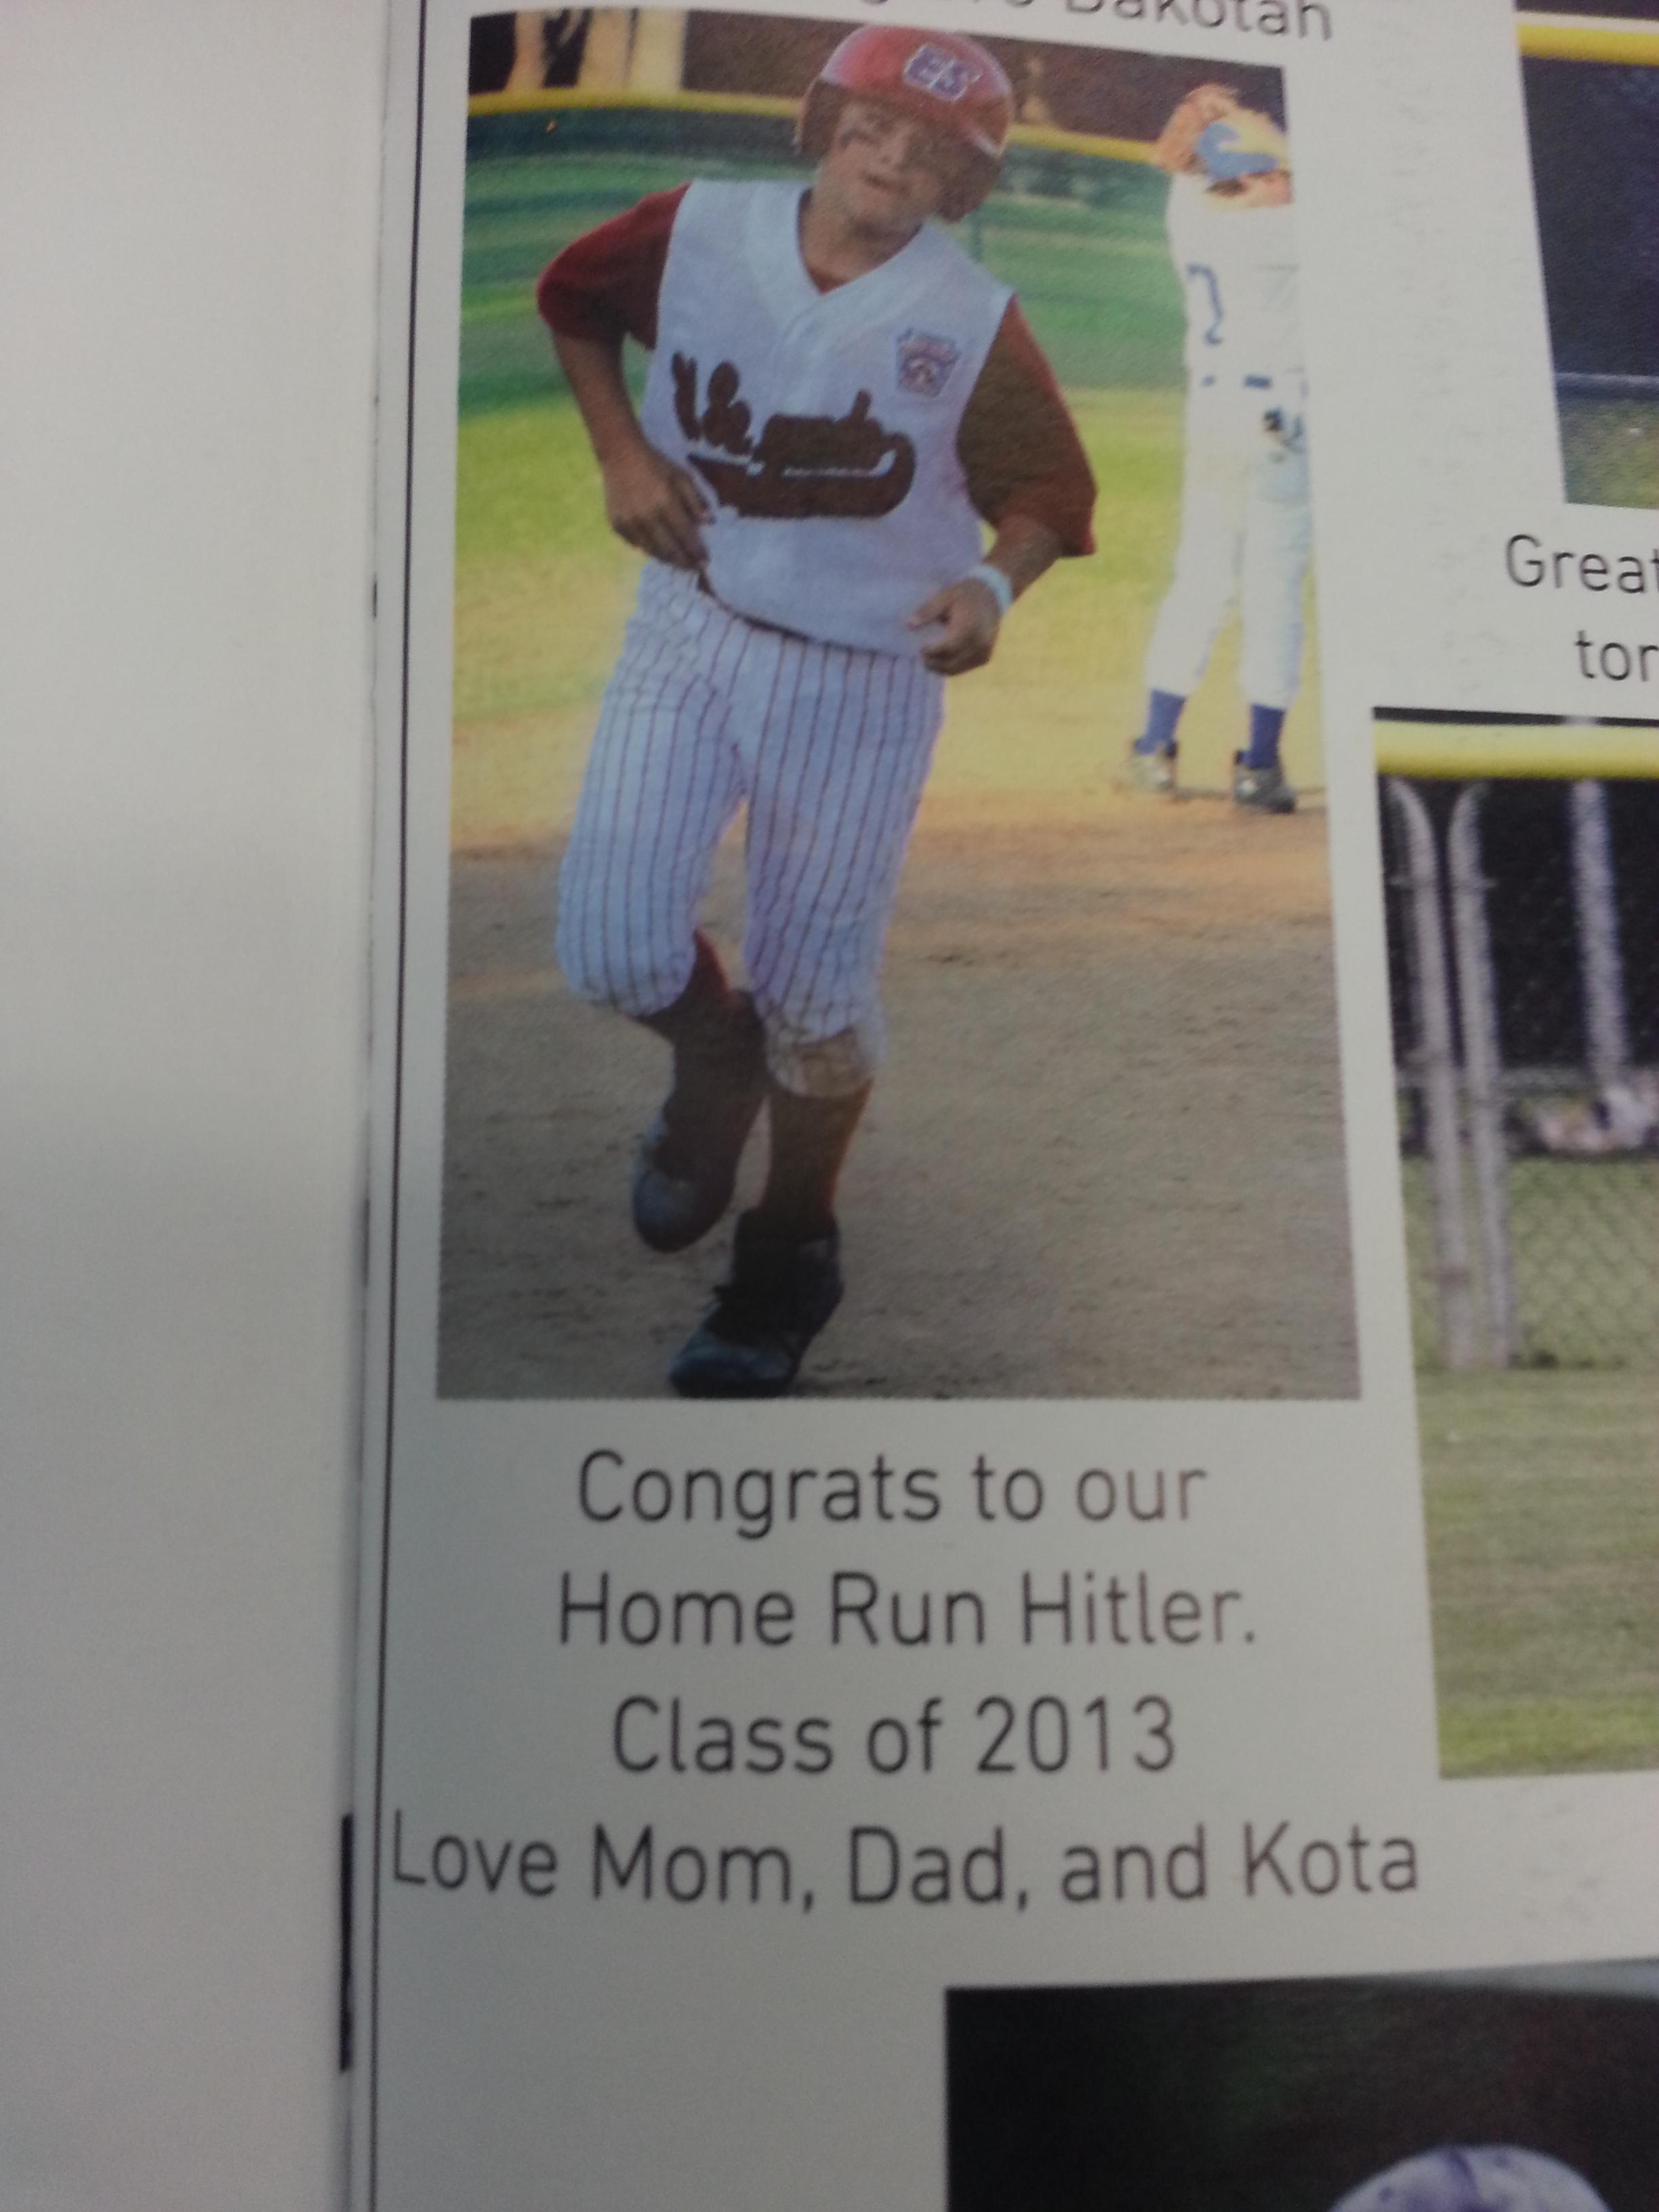 Home Run Hitler?